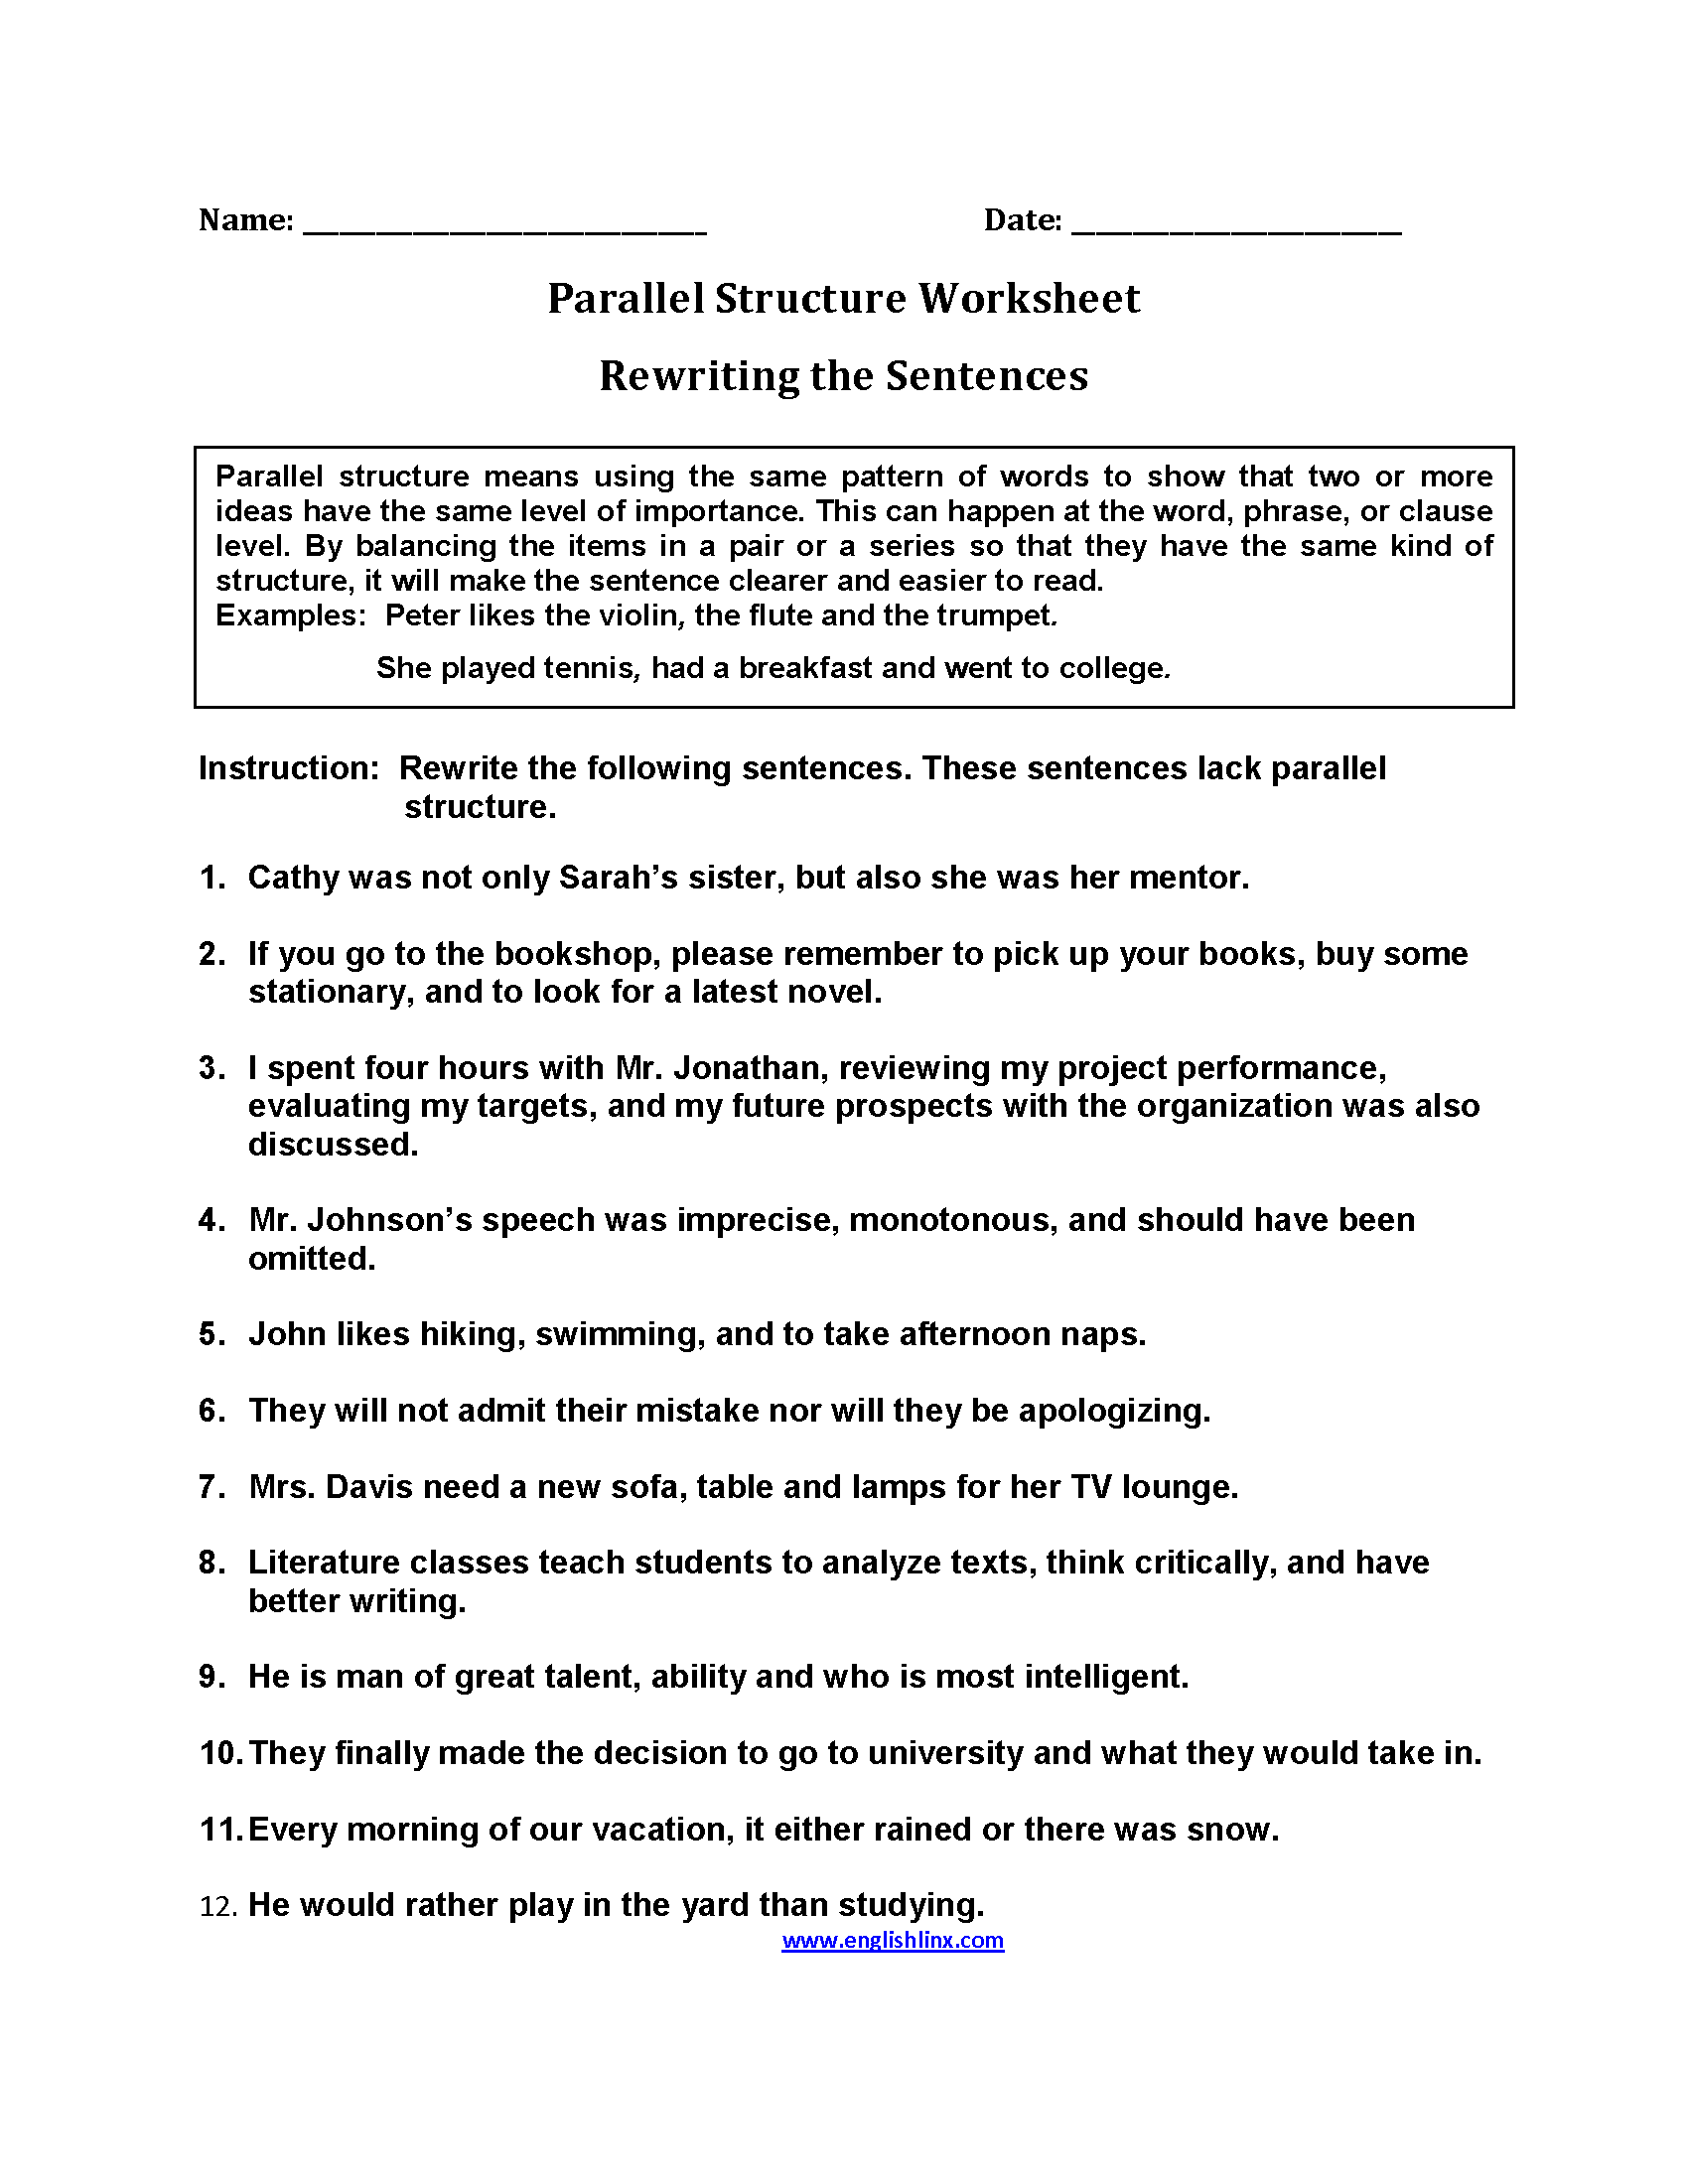 Rewriting Sentences Parallel Structure Worksheets